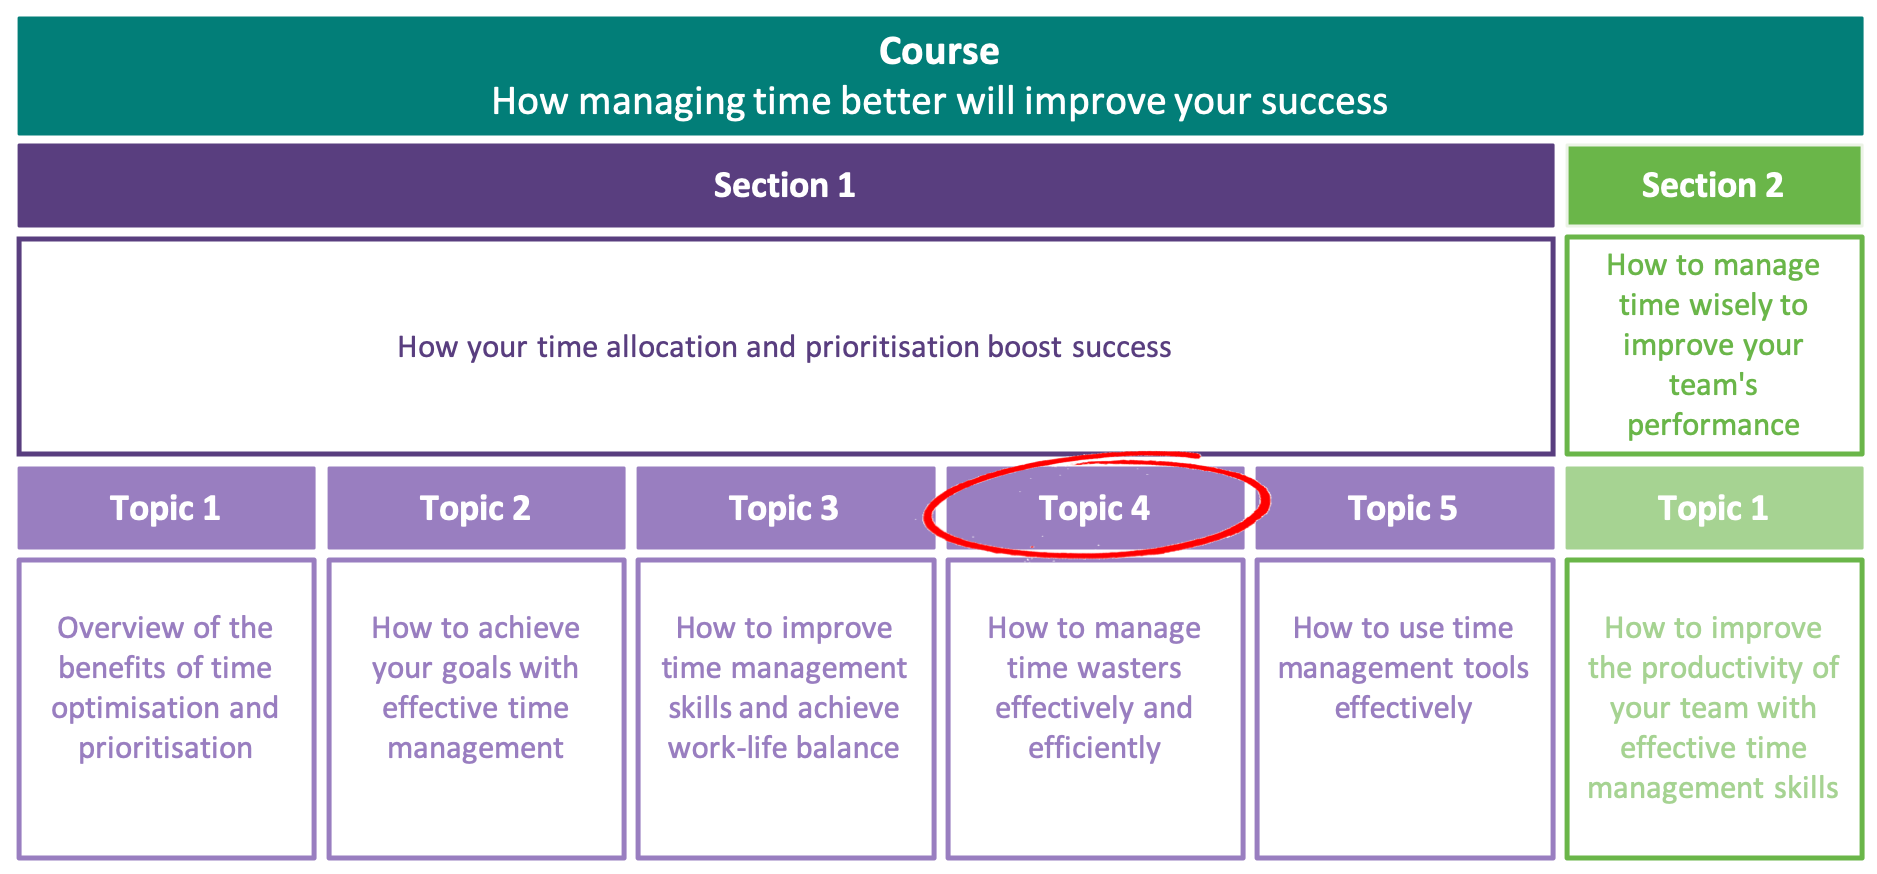 How to manage time wasters effectively and efficiently